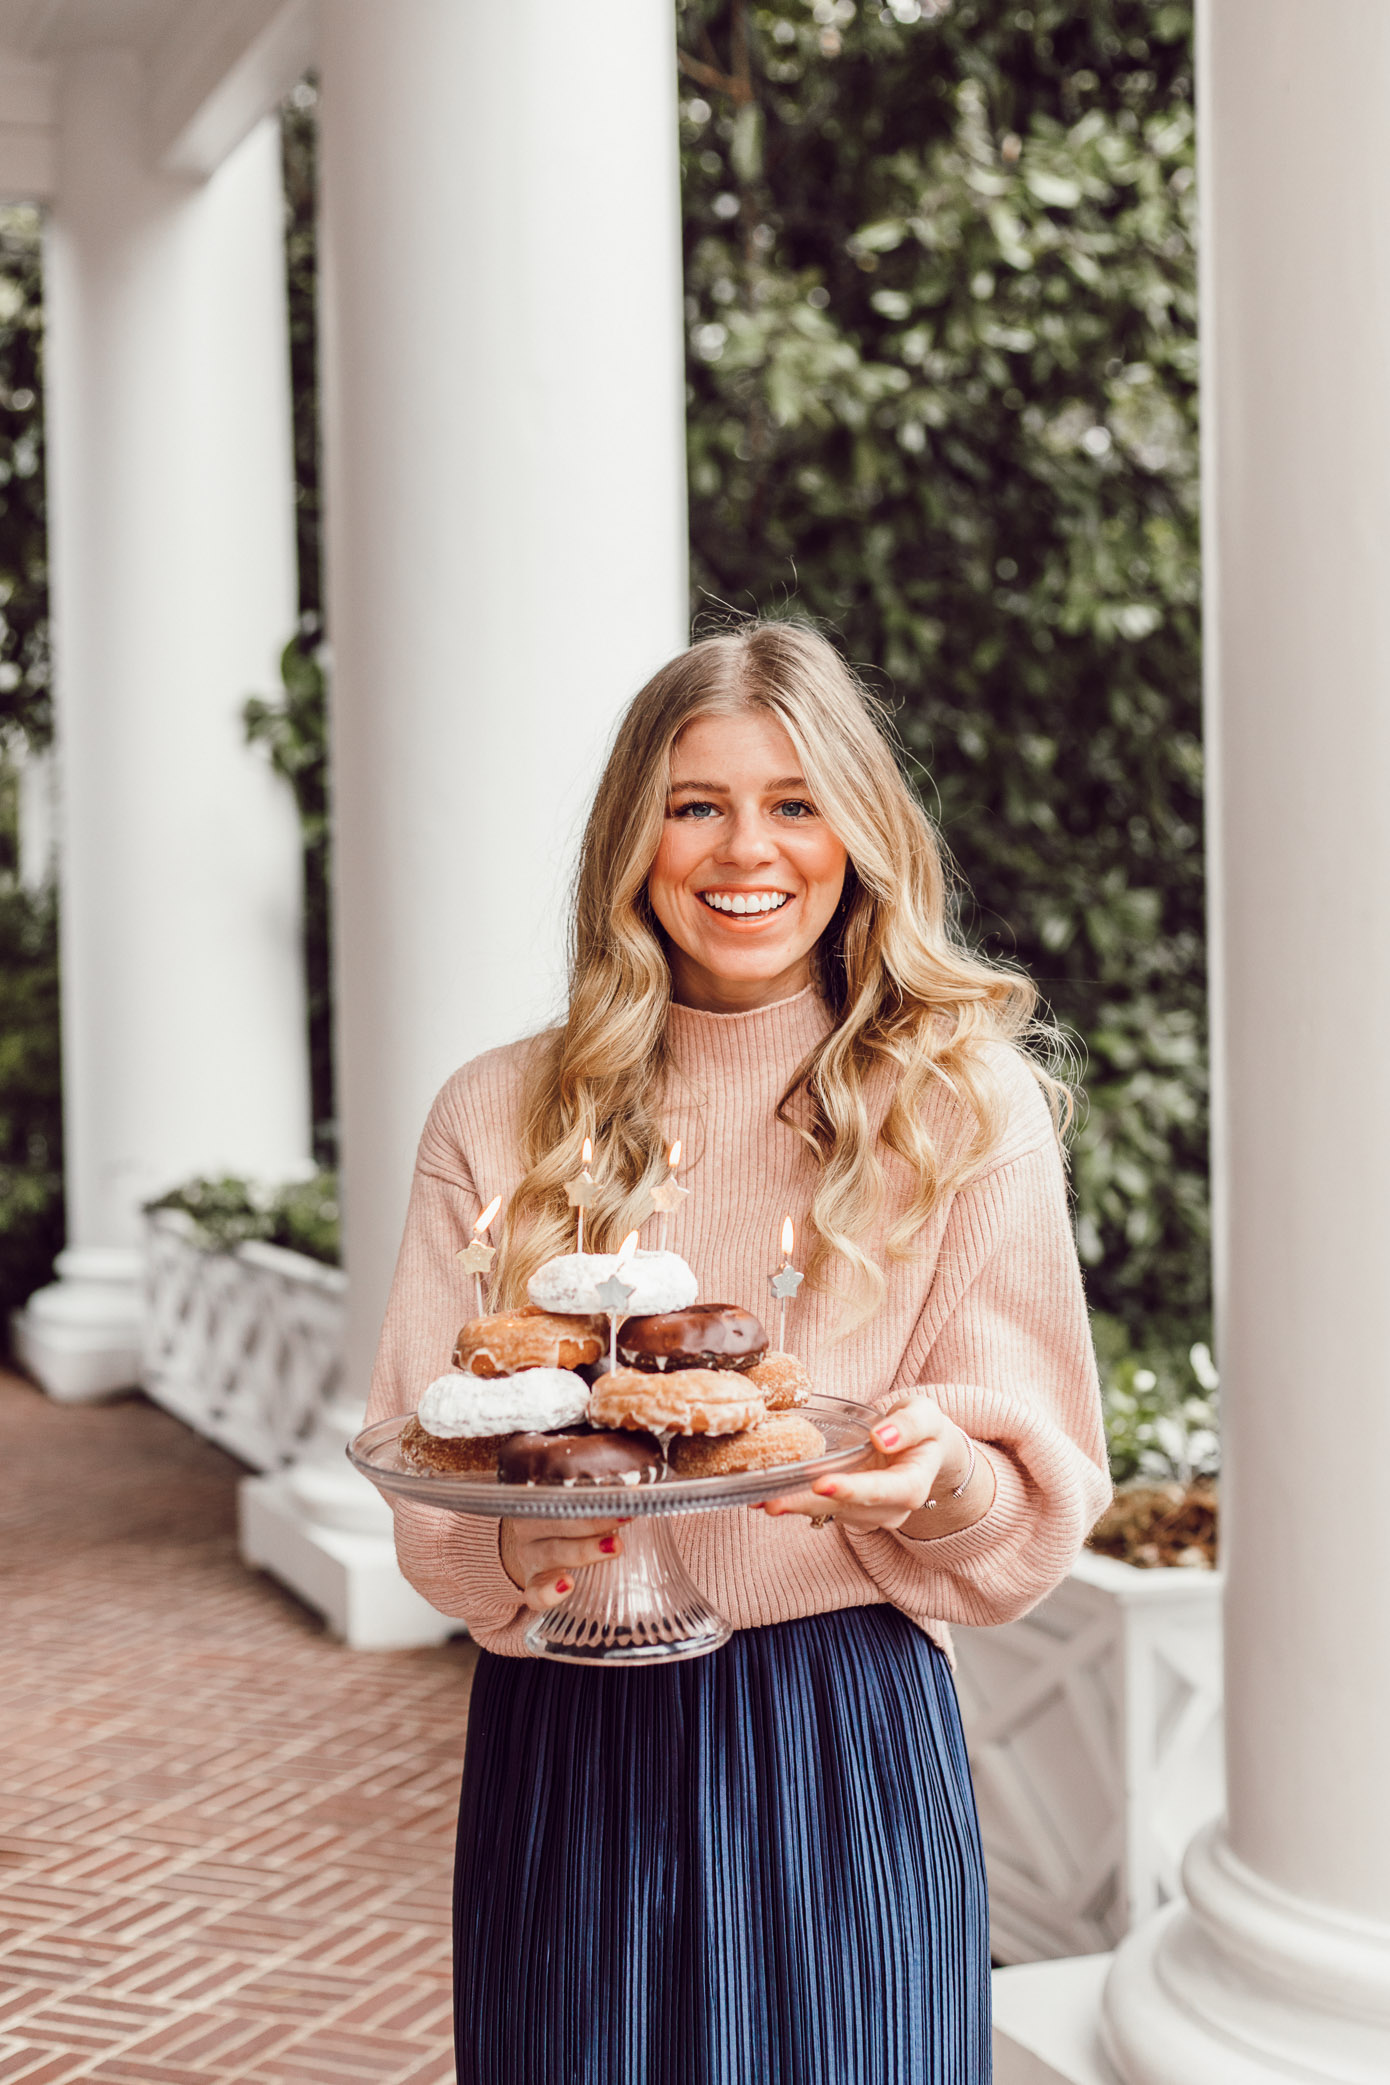 29 Life Lessons Learned featured on Louella Reese Blog for her 29th Birthday   Donut Cake